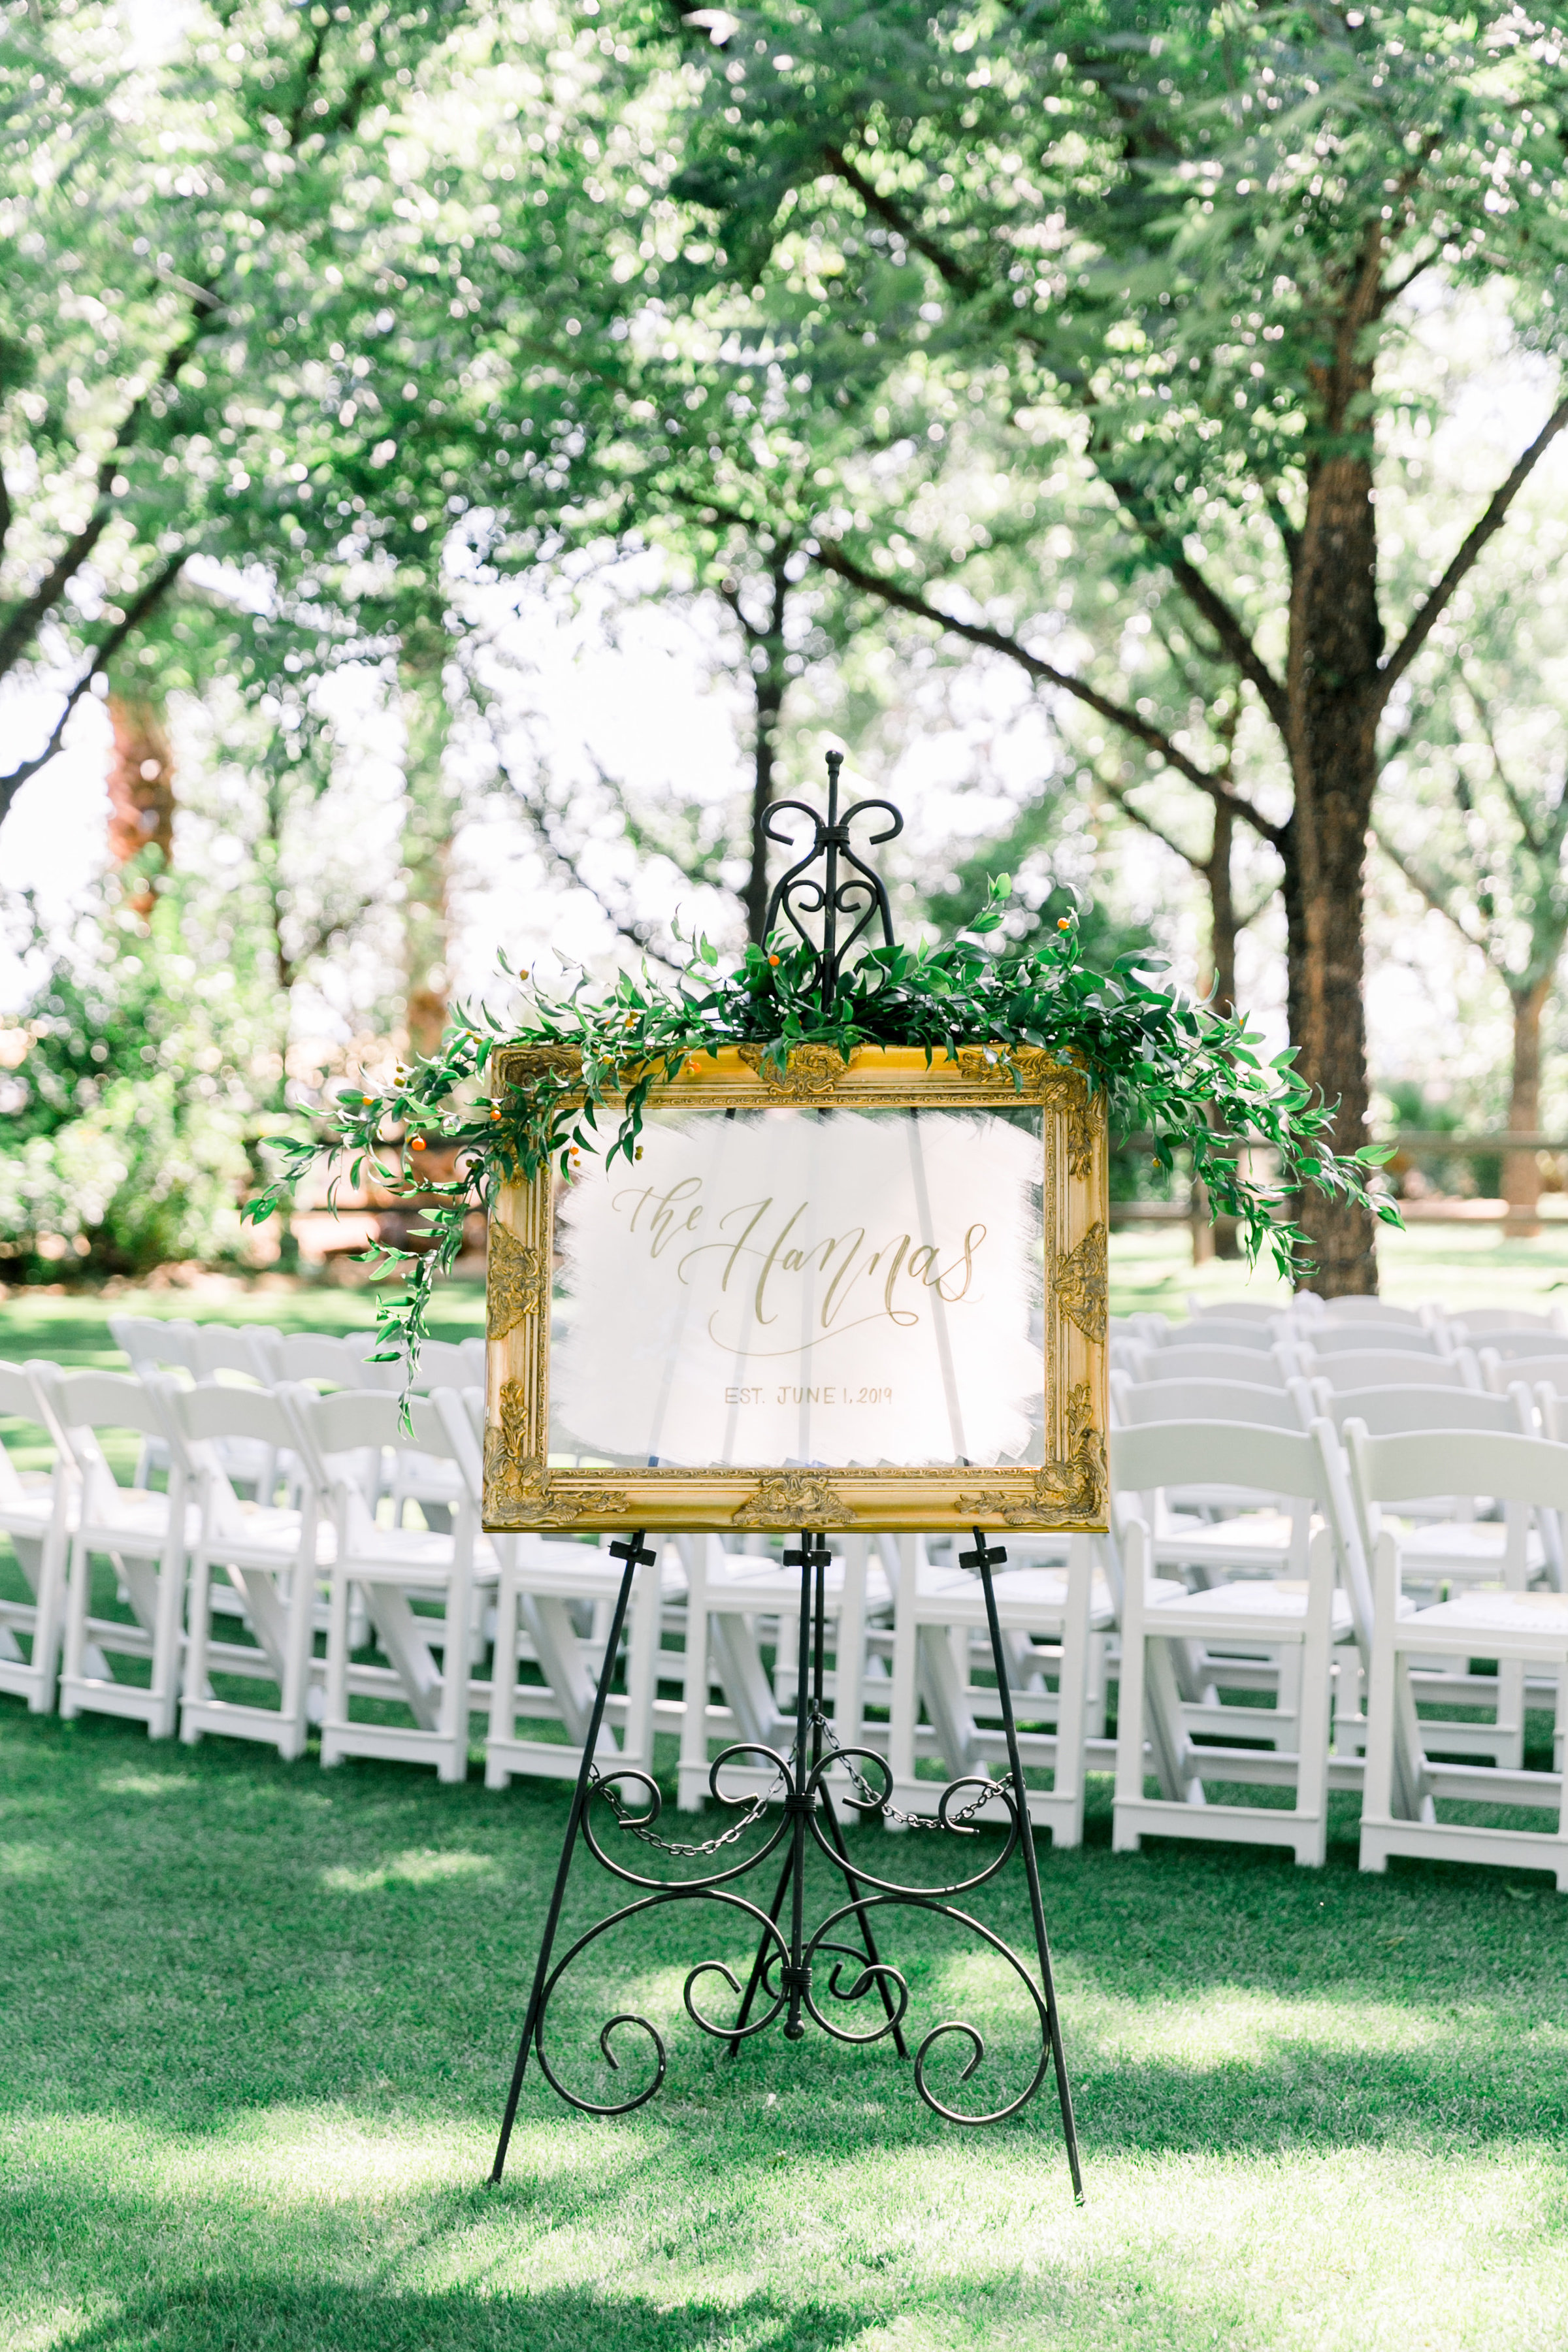 Karlie Colleen Photography - Venue At The Grove - Arizona Wedding - Maggie & Grant -28